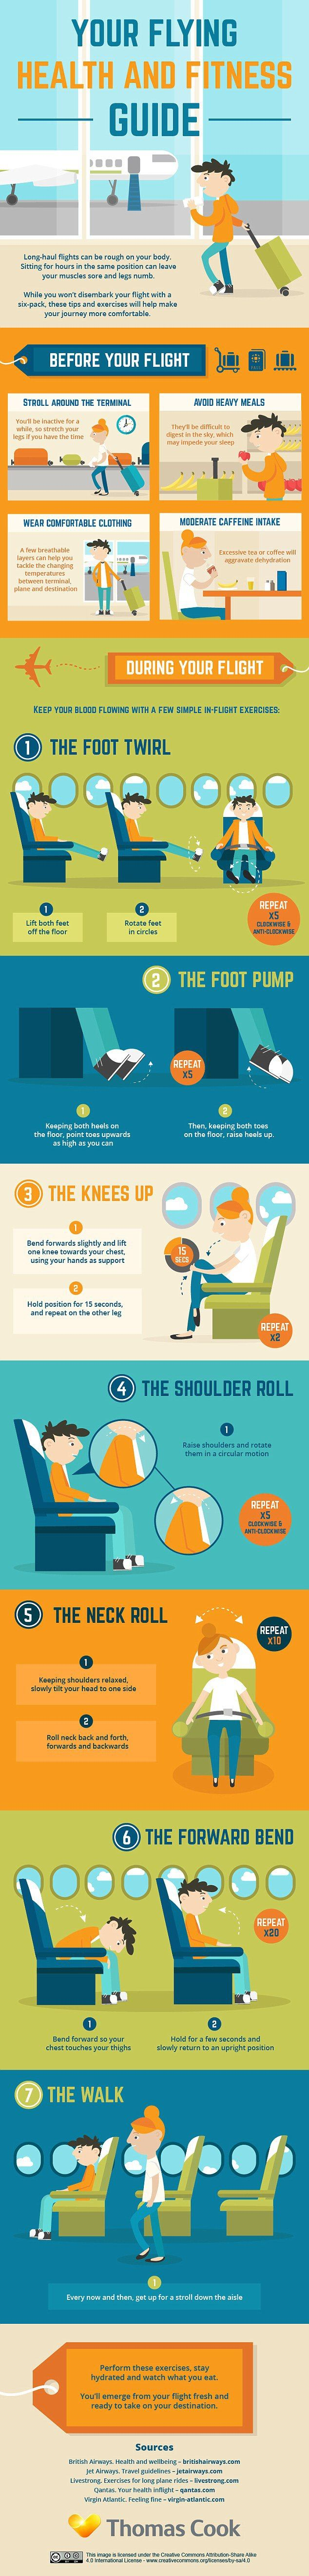 Top tips to staying stress free in the workplace infographic - Best 25 How To Avoid Stress Ideas Only On Pinterest How To Manage Stress Ways To Manage Stress And Managing Stress At Work